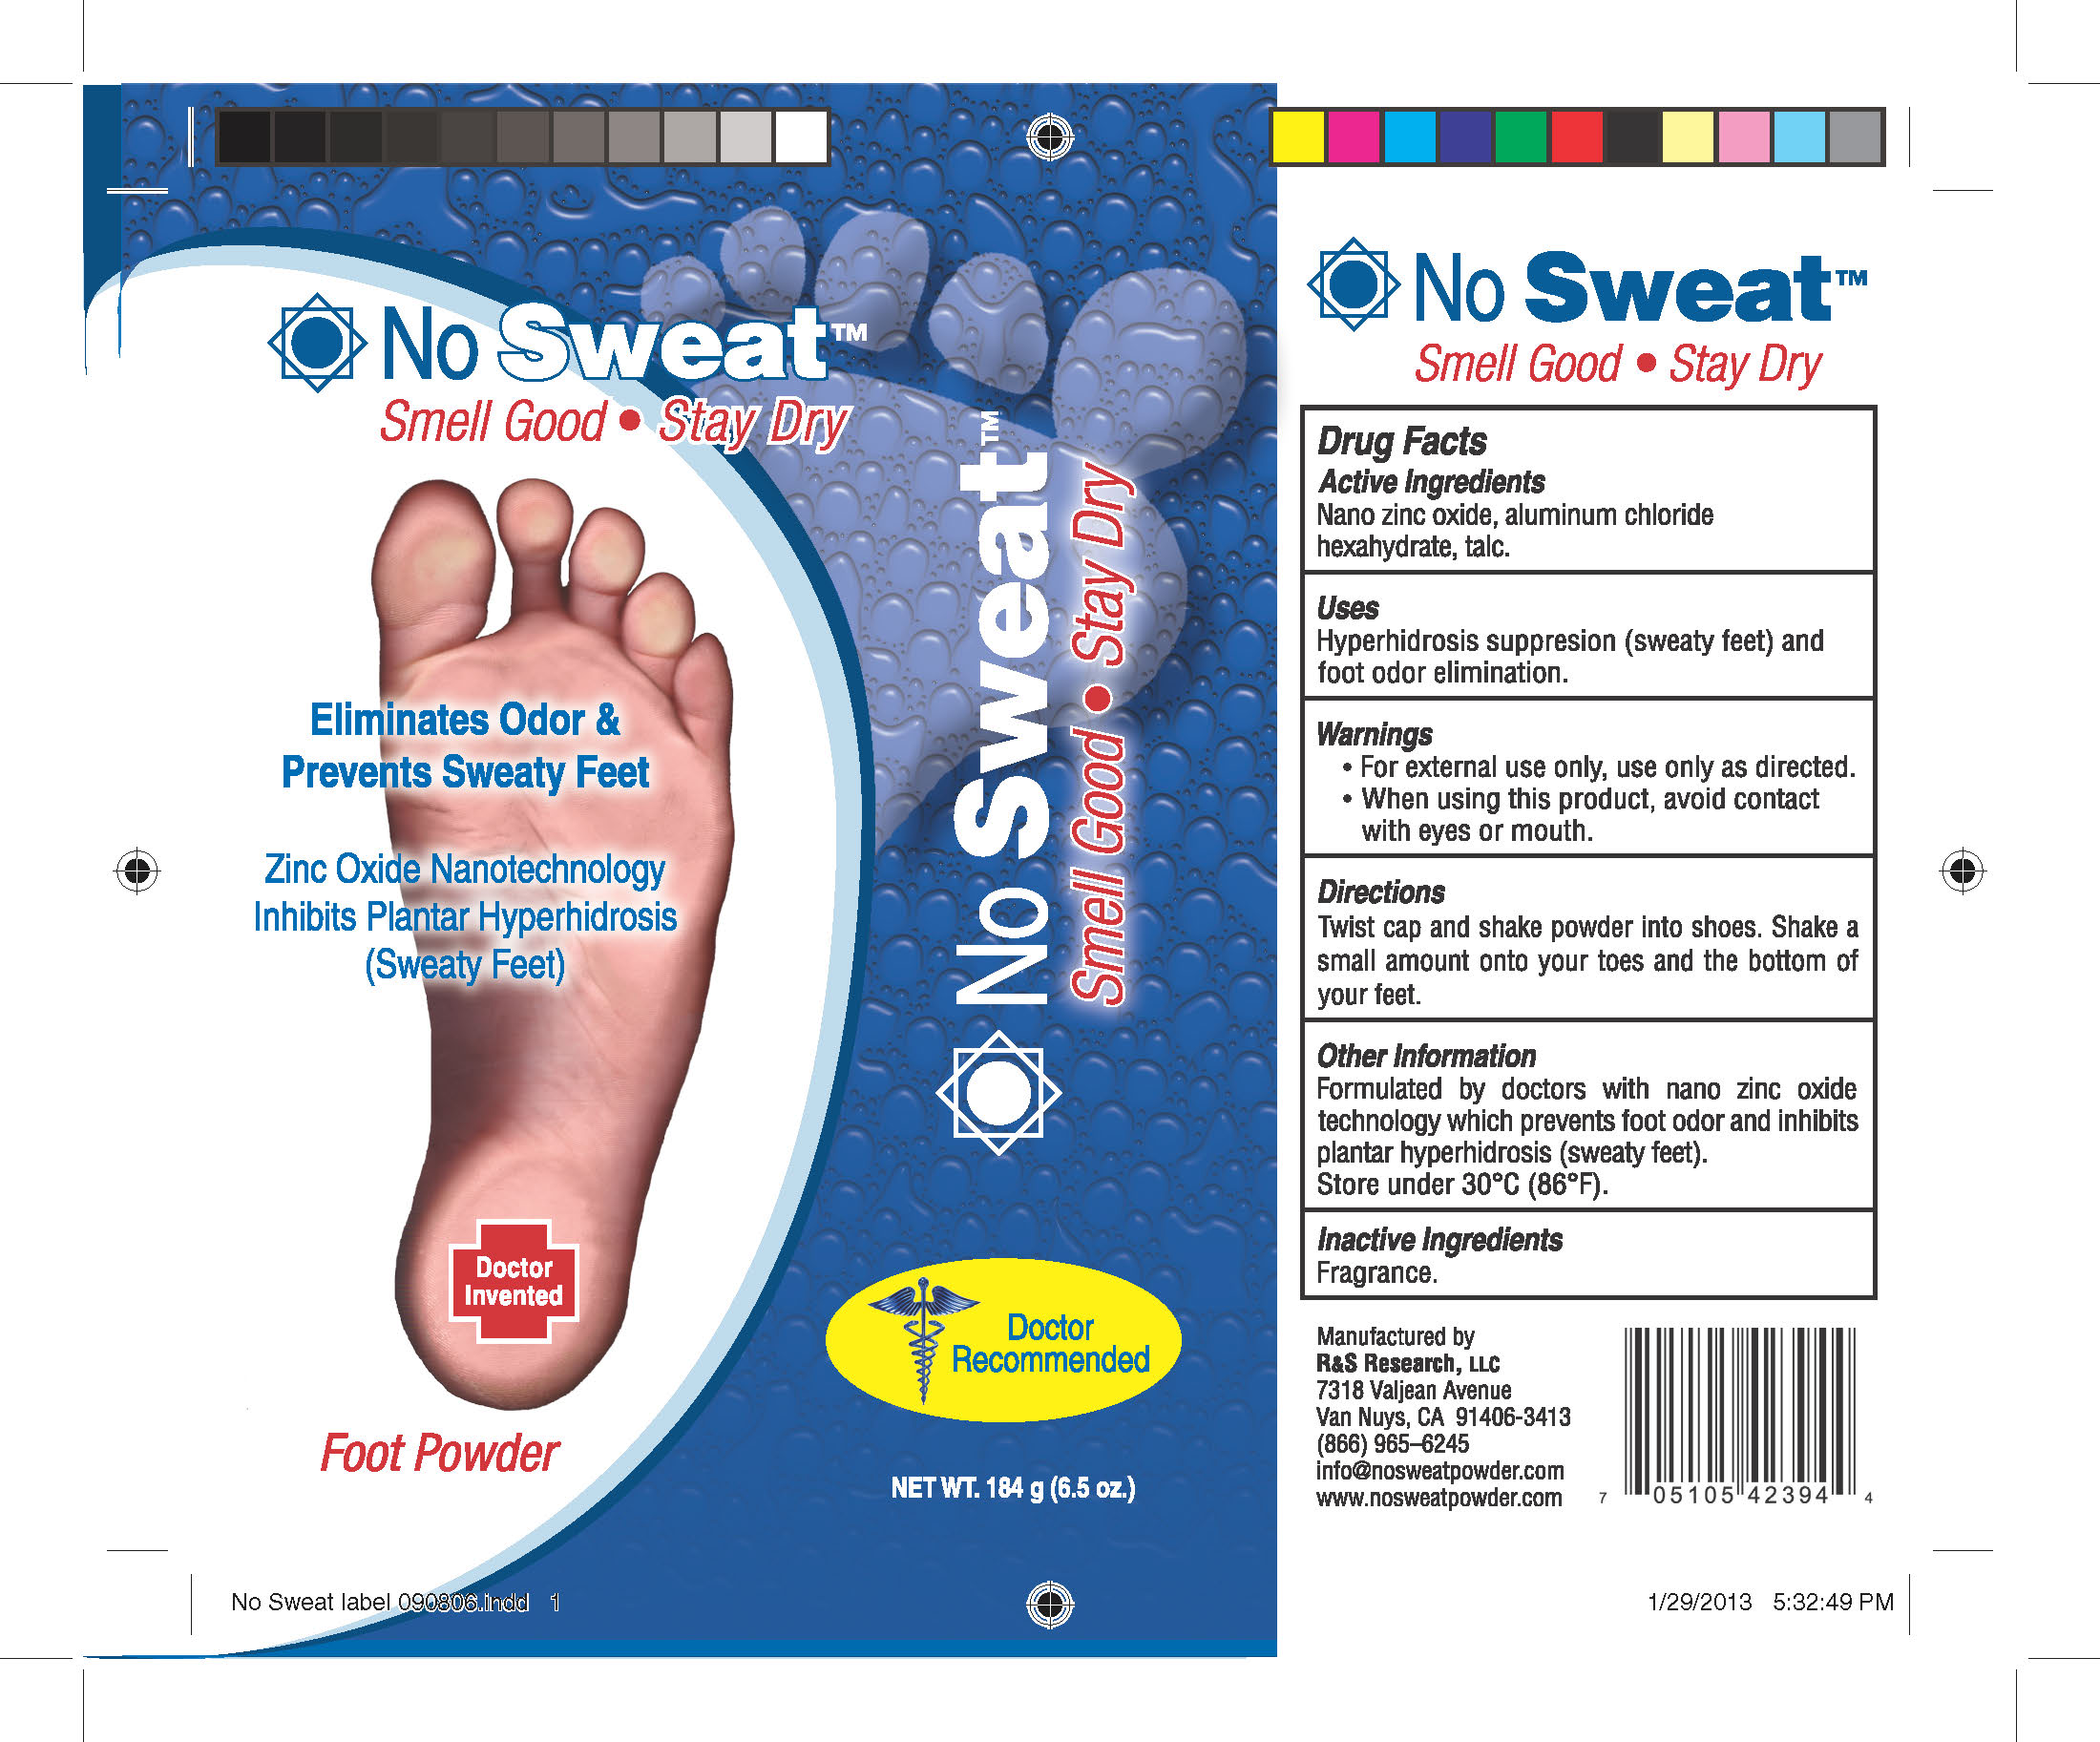 No Sweat Label